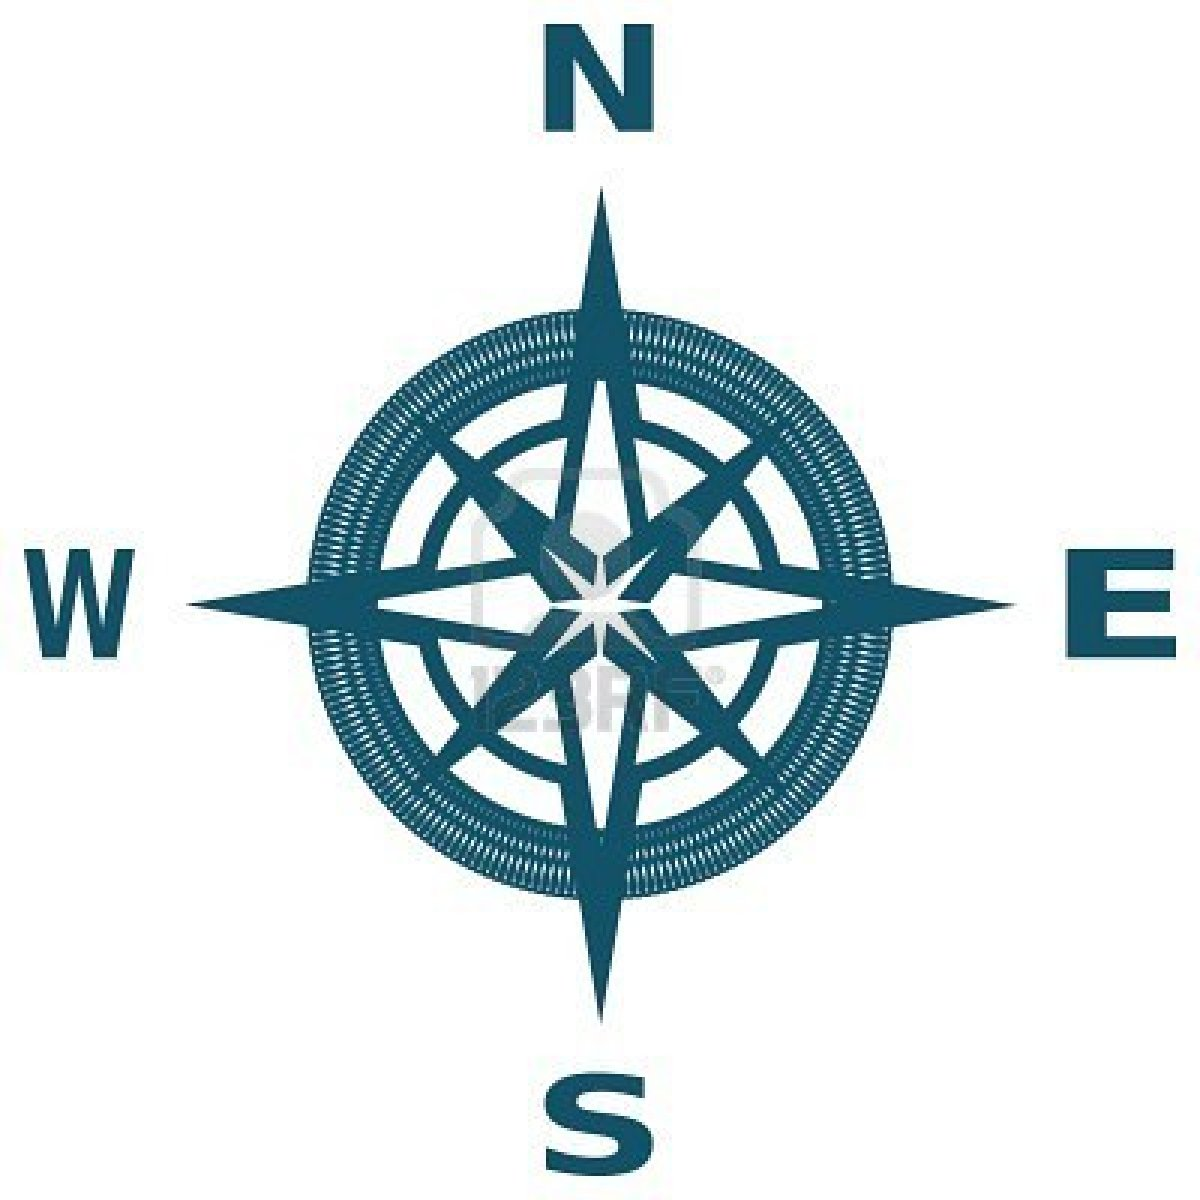 Picture Of A Compass - ClipArt Best